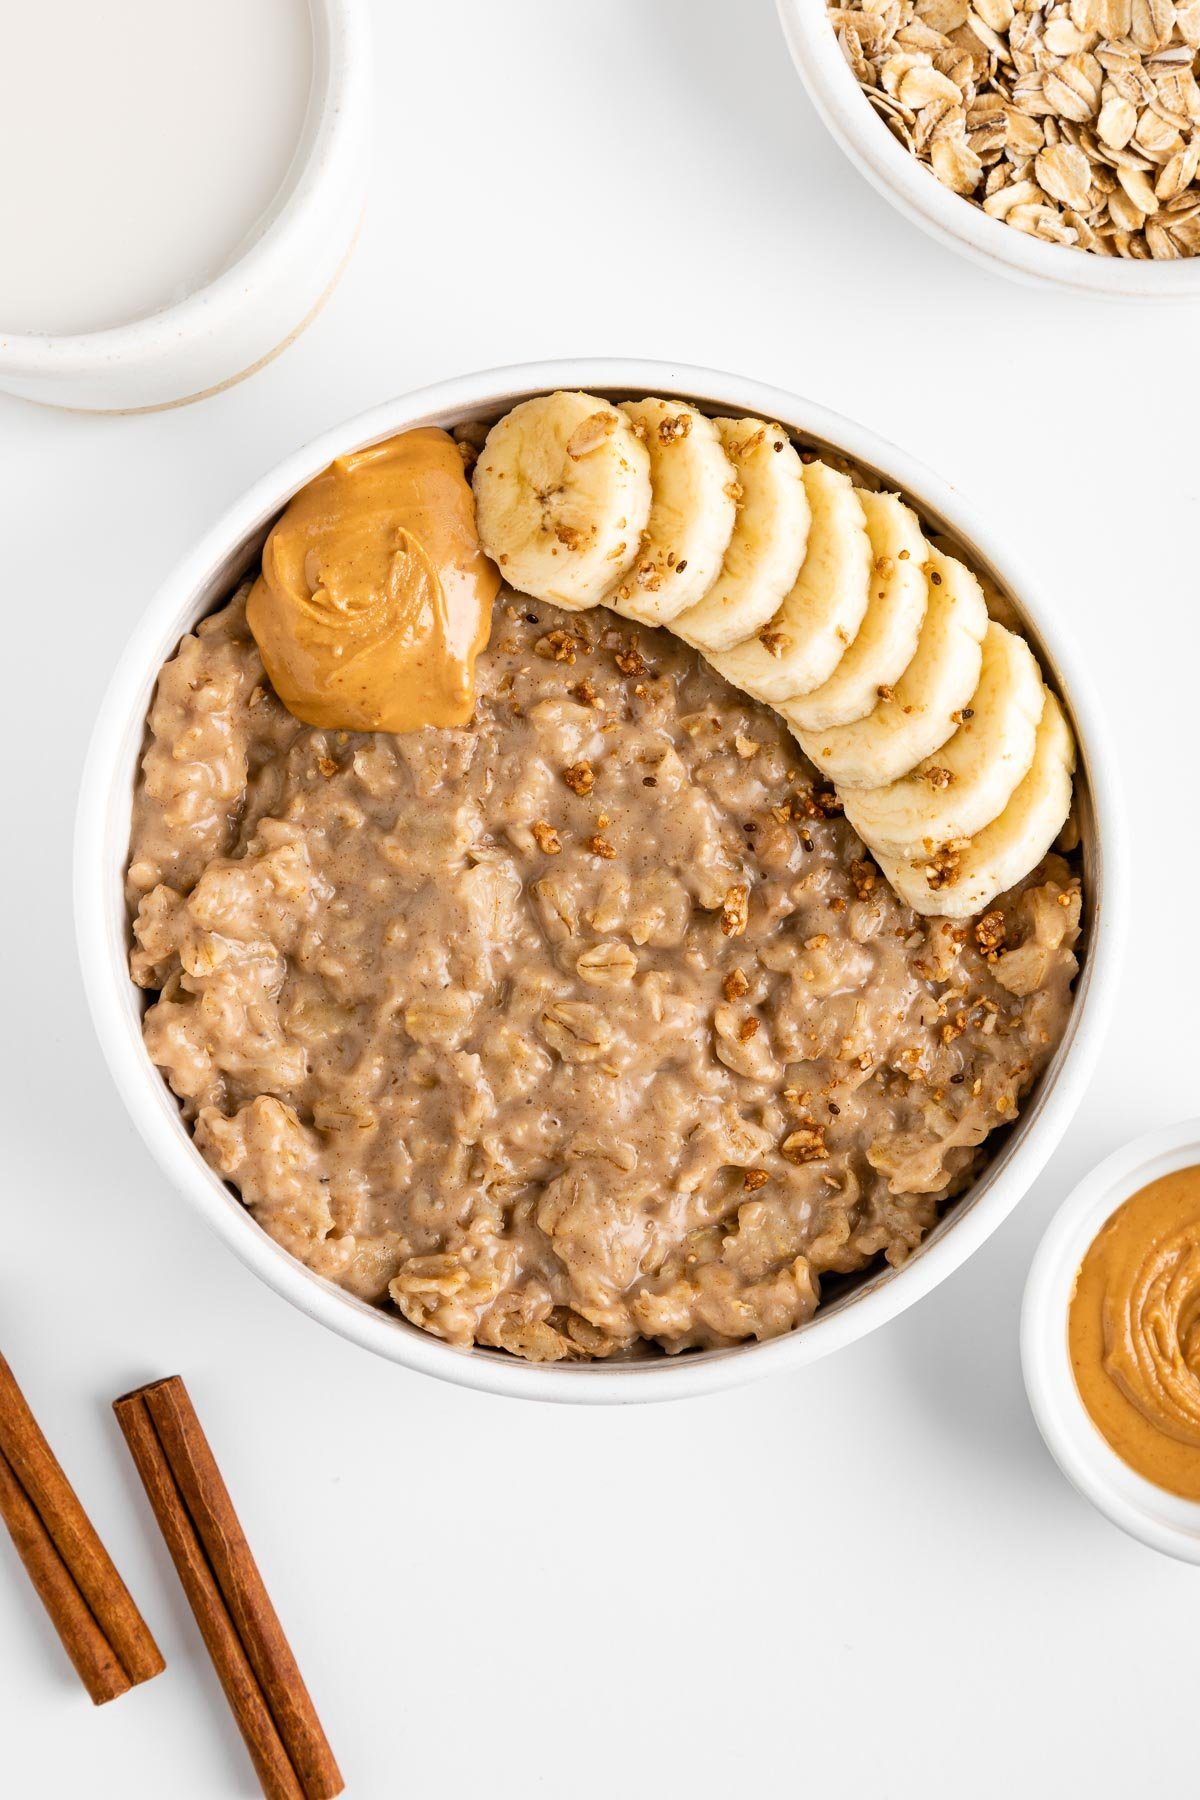 peanut butter oatmeal in a white bowl surrounded by cinnamon sticks, a bowl of oats, a bowl of nut butter, and a ceramic mug filled with almond milk